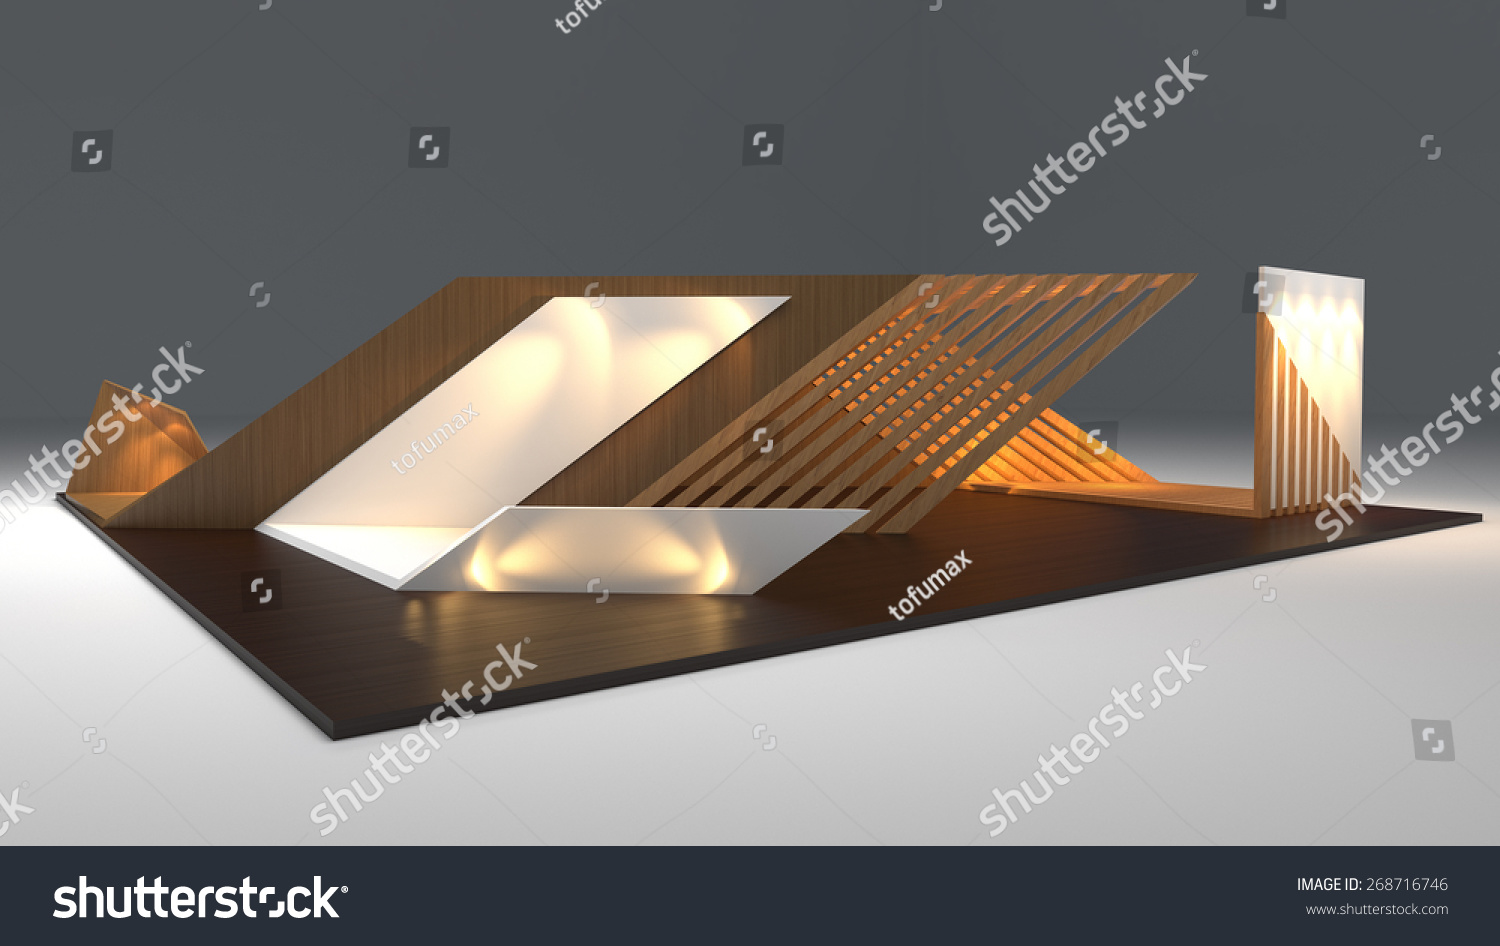 D Exhibition Design : Modern booth exhibition design d render stock illustration